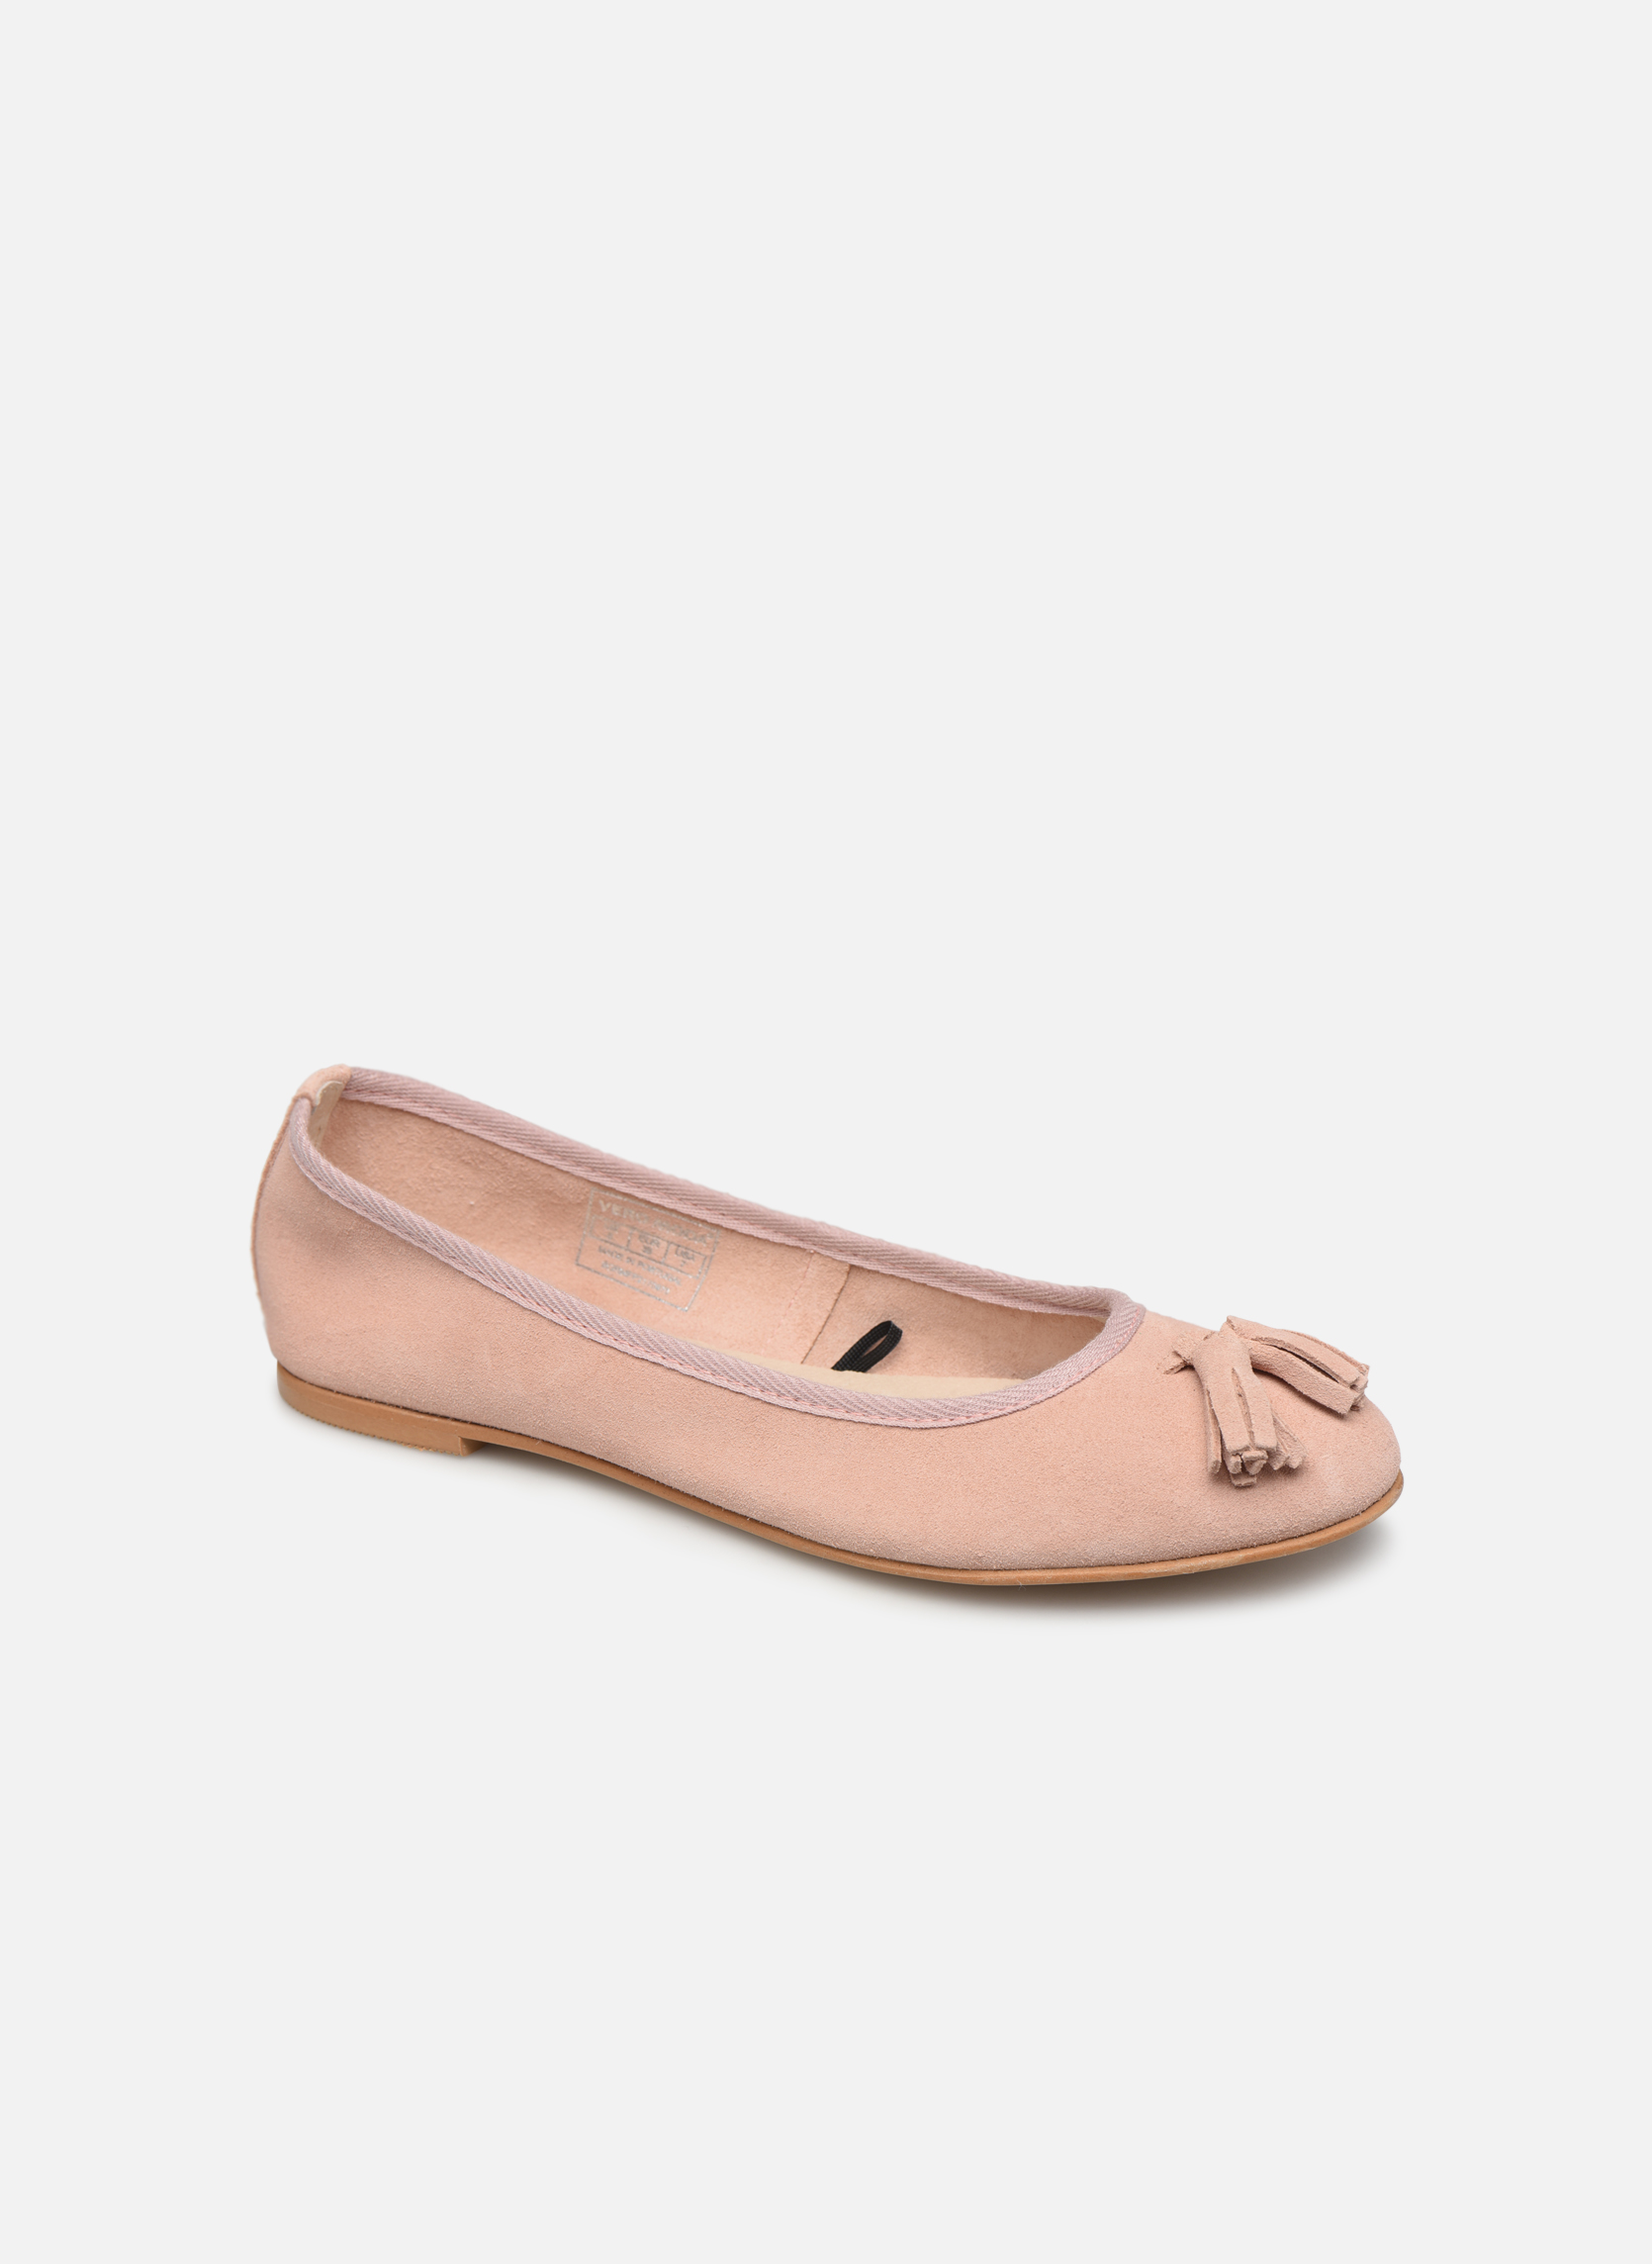 Ballerina's Vmfreya Leather Ballerina by Vero Moda